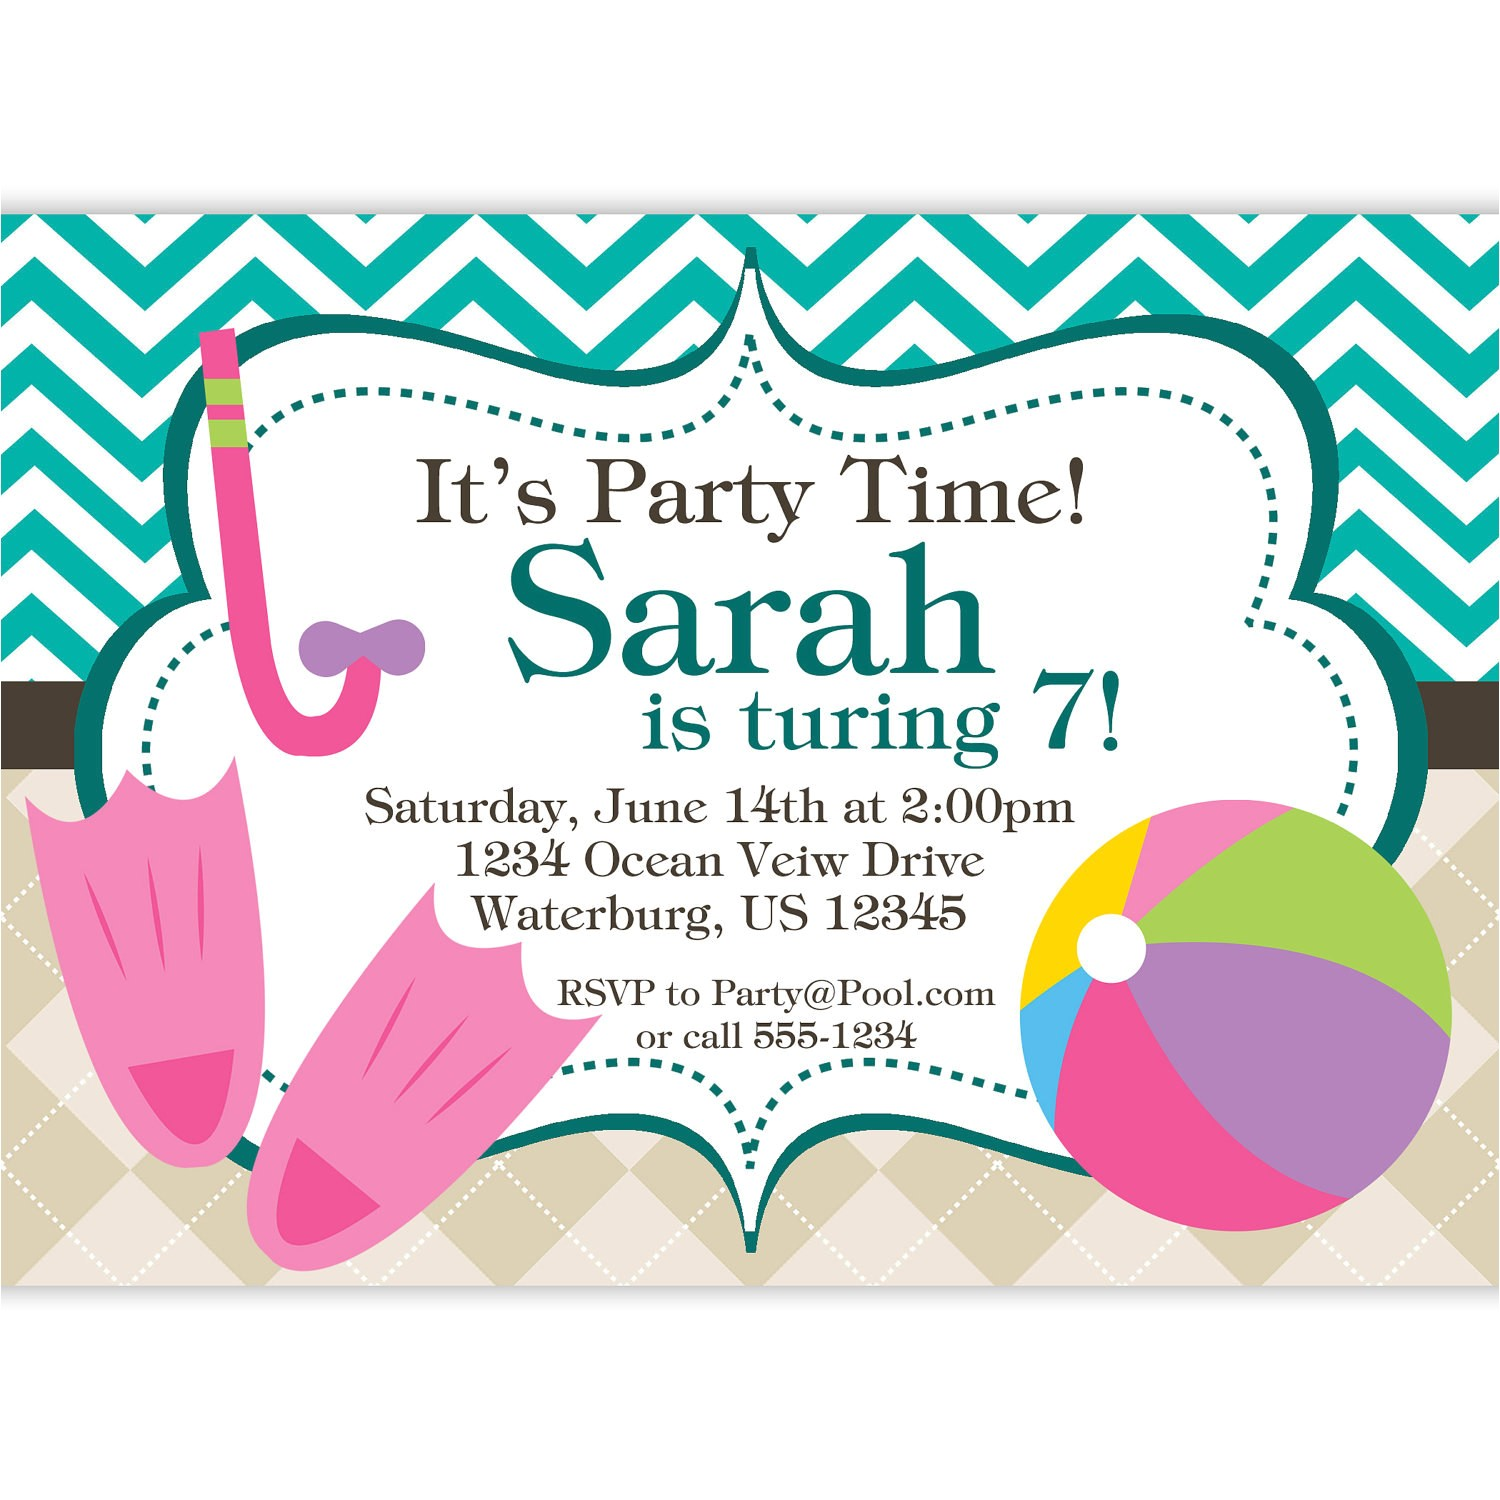 pool party invitation teal chevron and